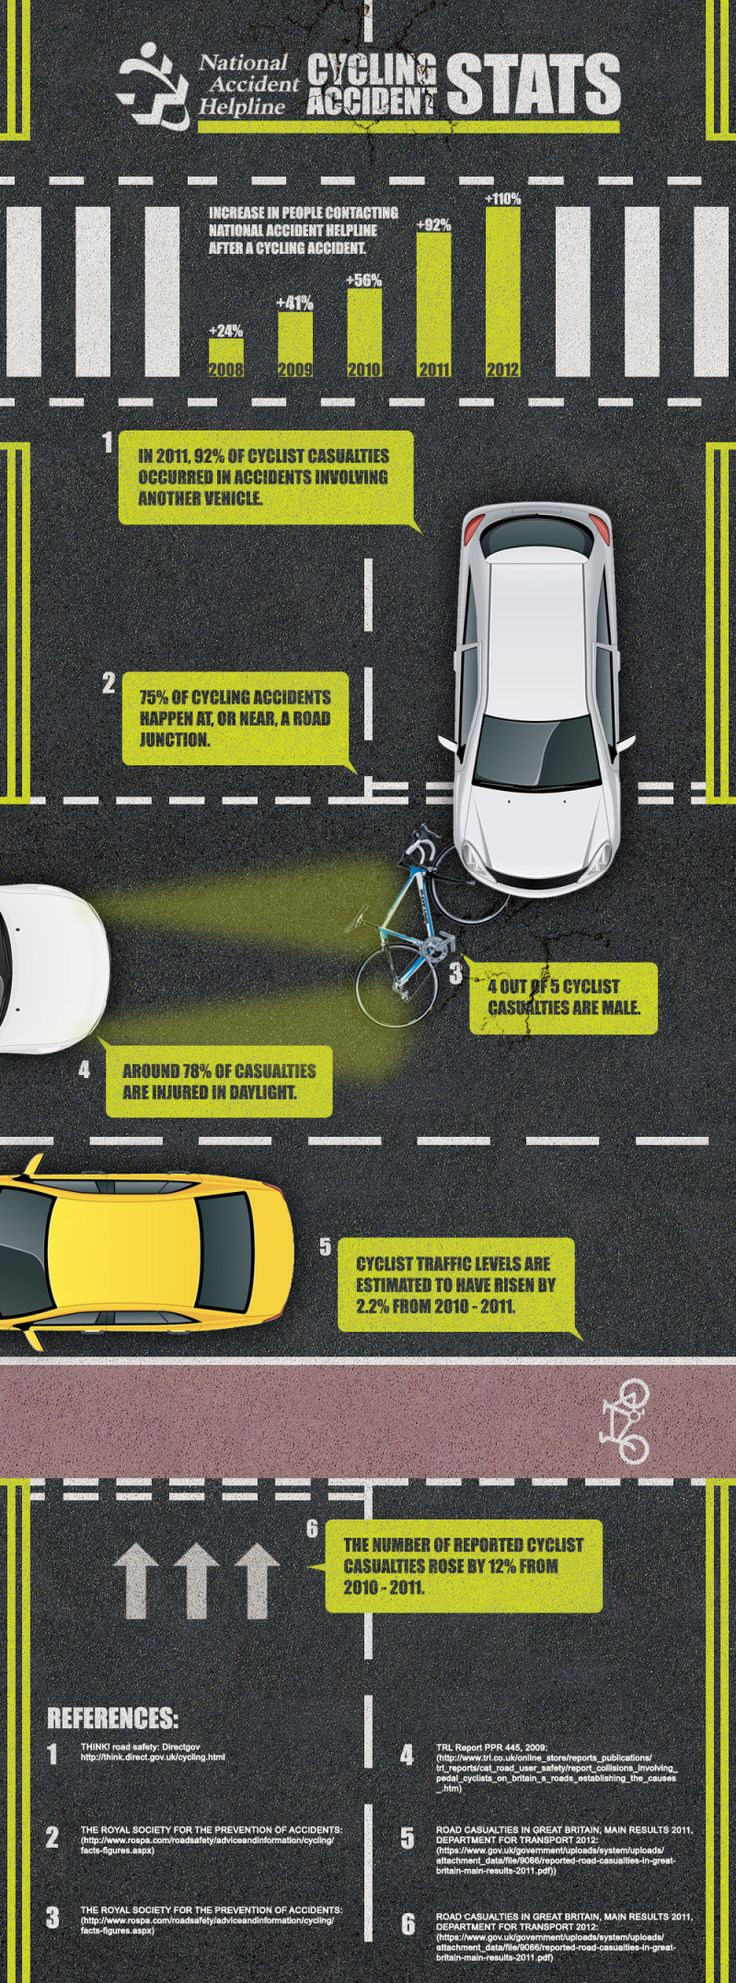 Car colour affects road safety - Many Of Us Are Worried About Bicycle Safety This Article Helps You With Safety Tips On How To Stay Safe On Your Ride And Improve Your Road Safety